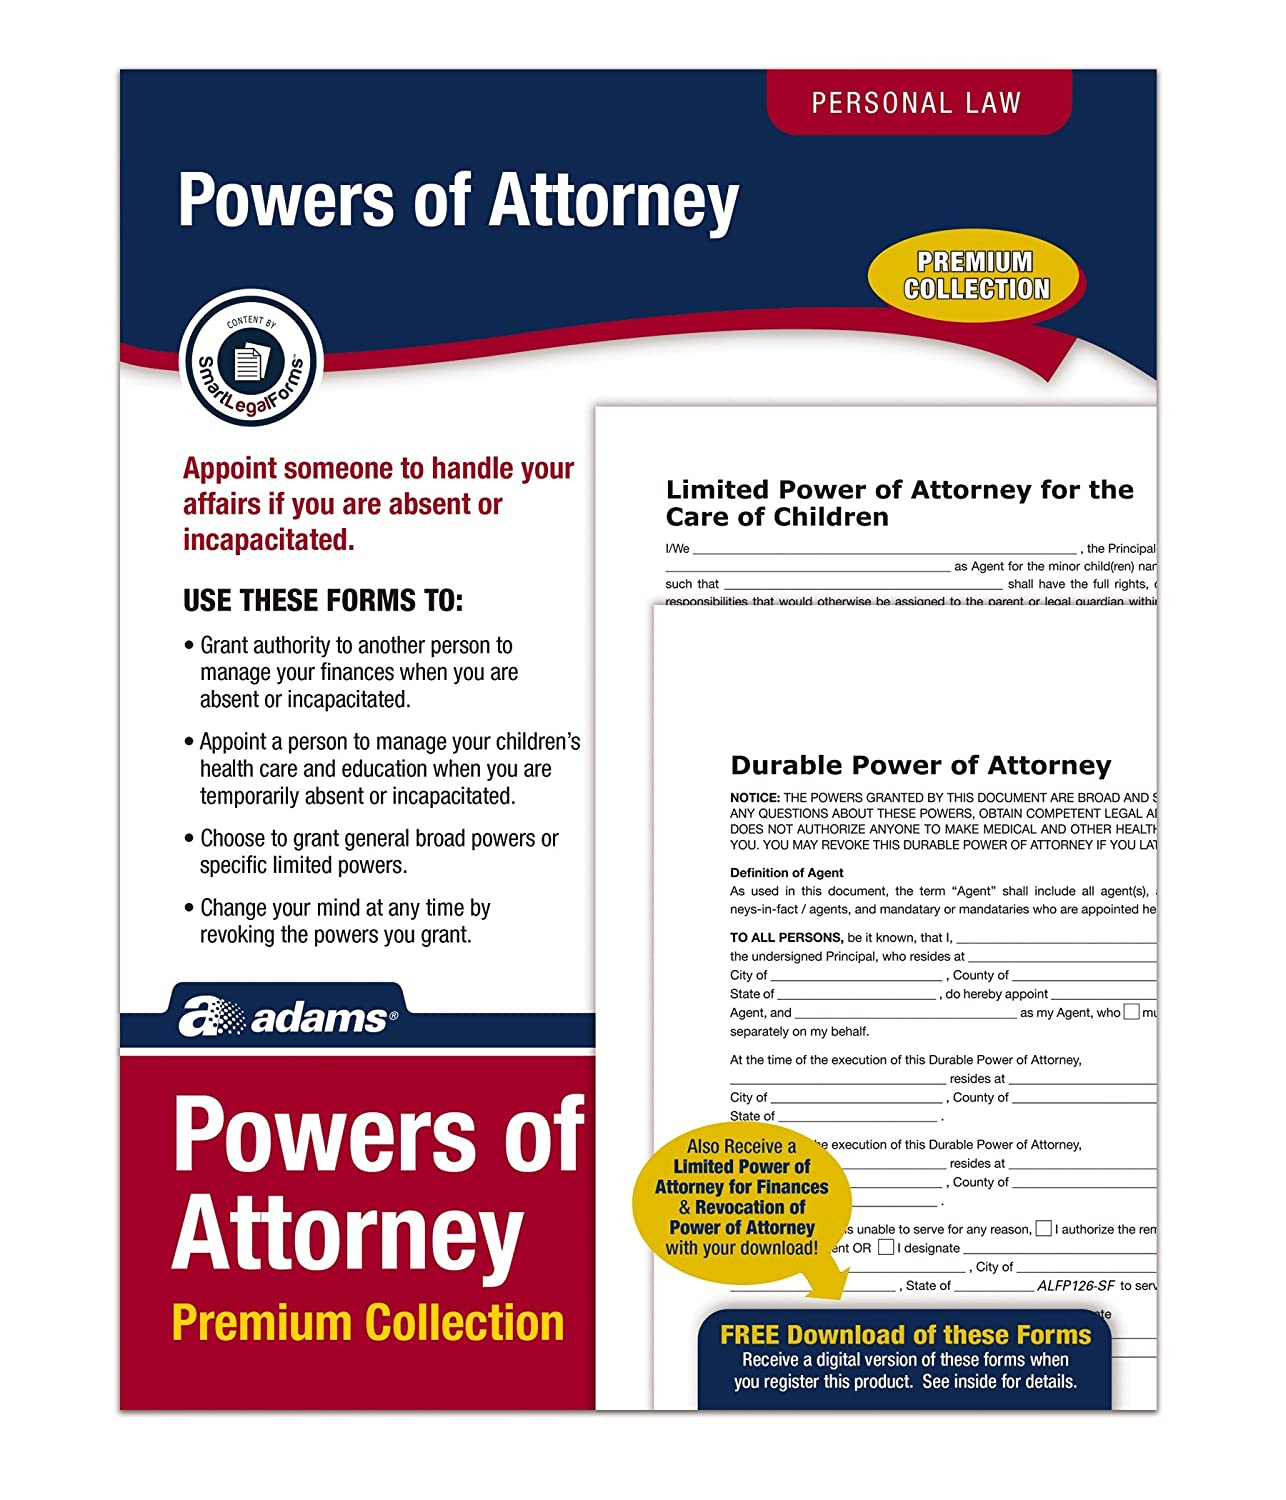 amazon com adams power of attorney forms pack includes forms and